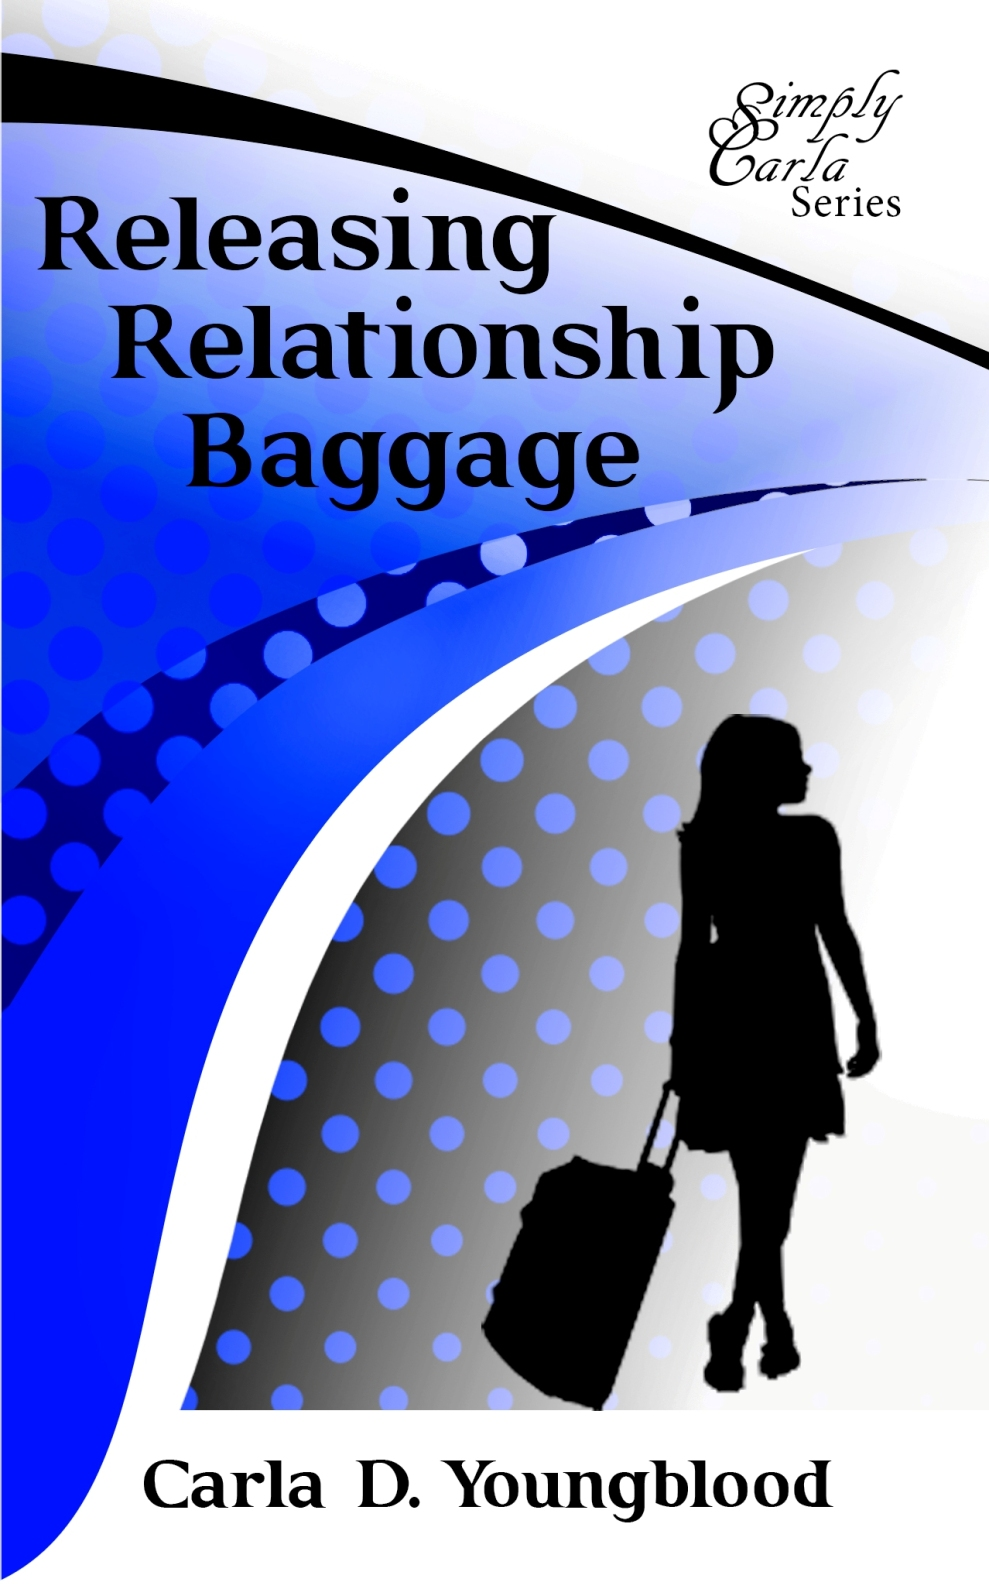 Releasing Relationship baggage[9585]